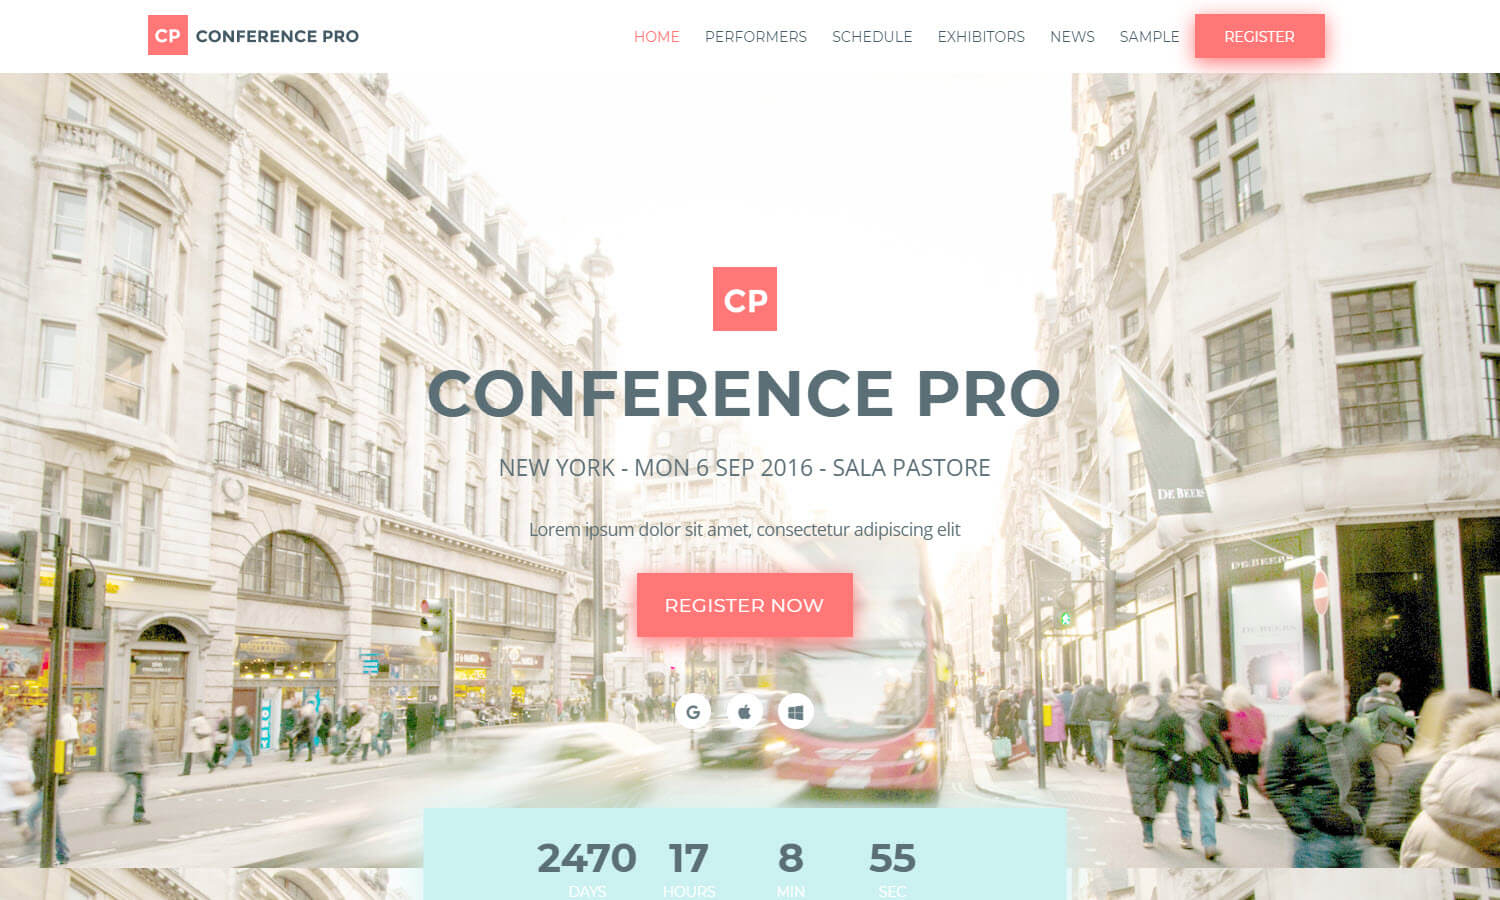 Conference Pro screenshot